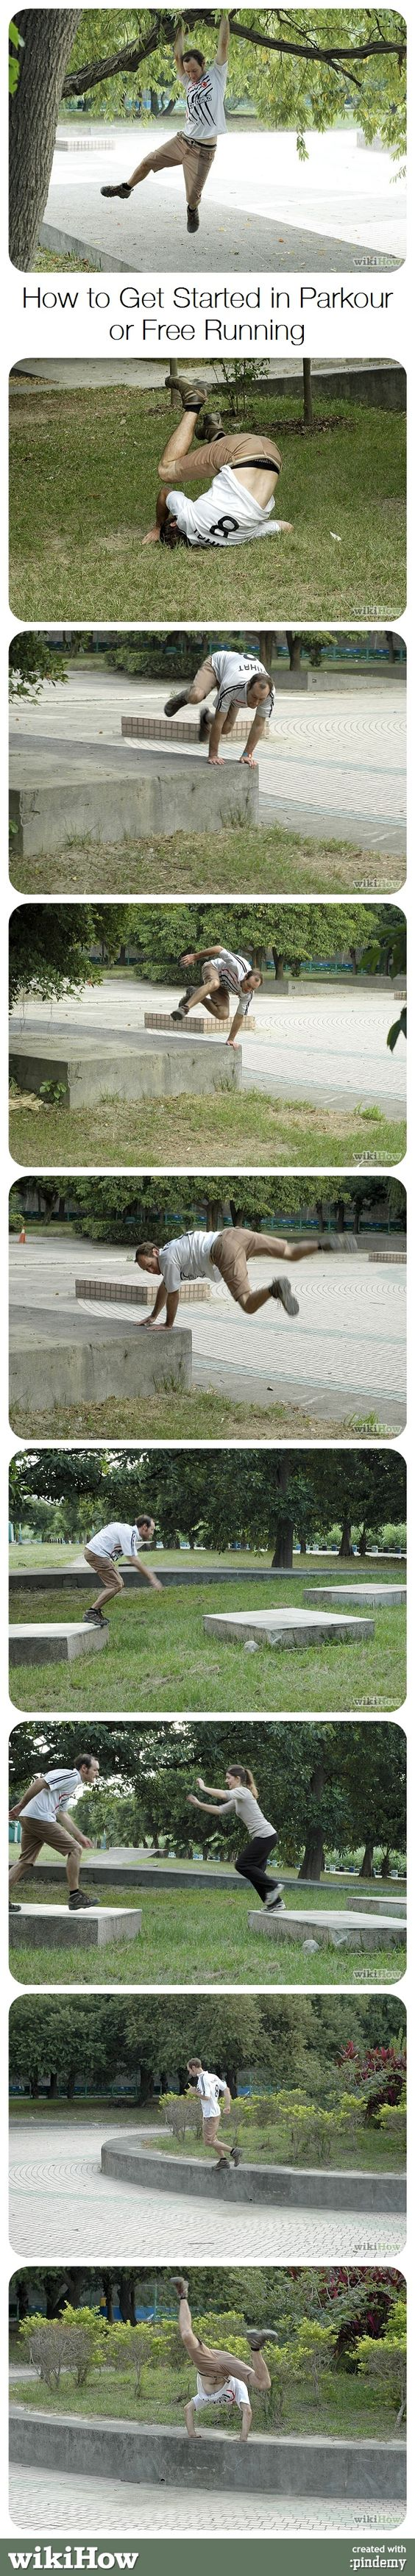 How to get in shape for parkour